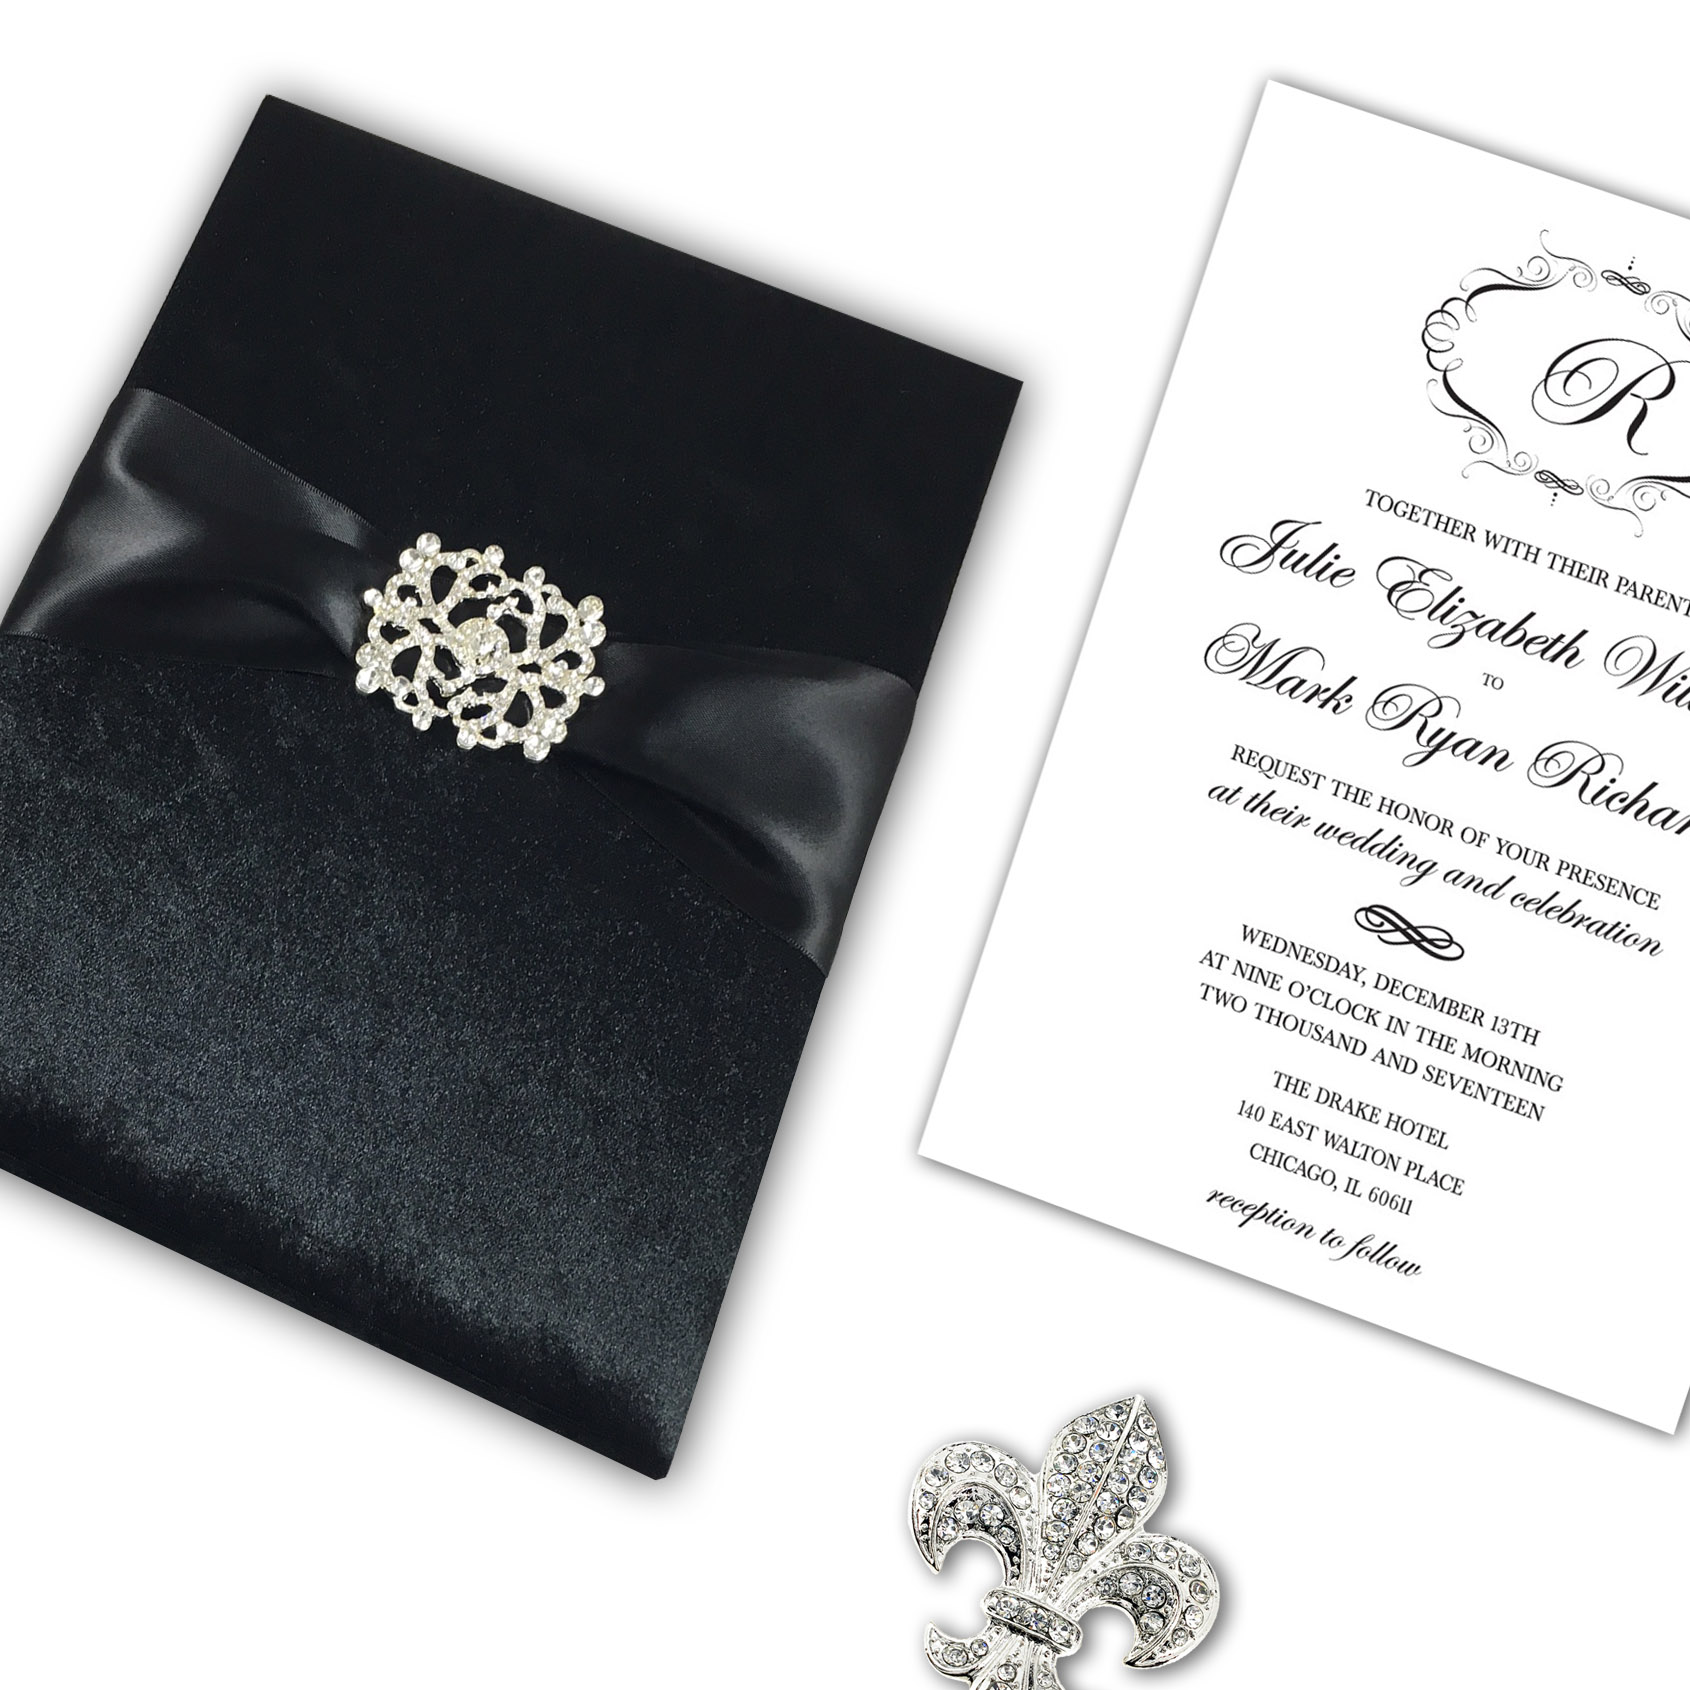 Target Wedding Invitations Kits: RED COUTURE VELVET INVITATION WITH LUXURY PEARL + CRYSTAL